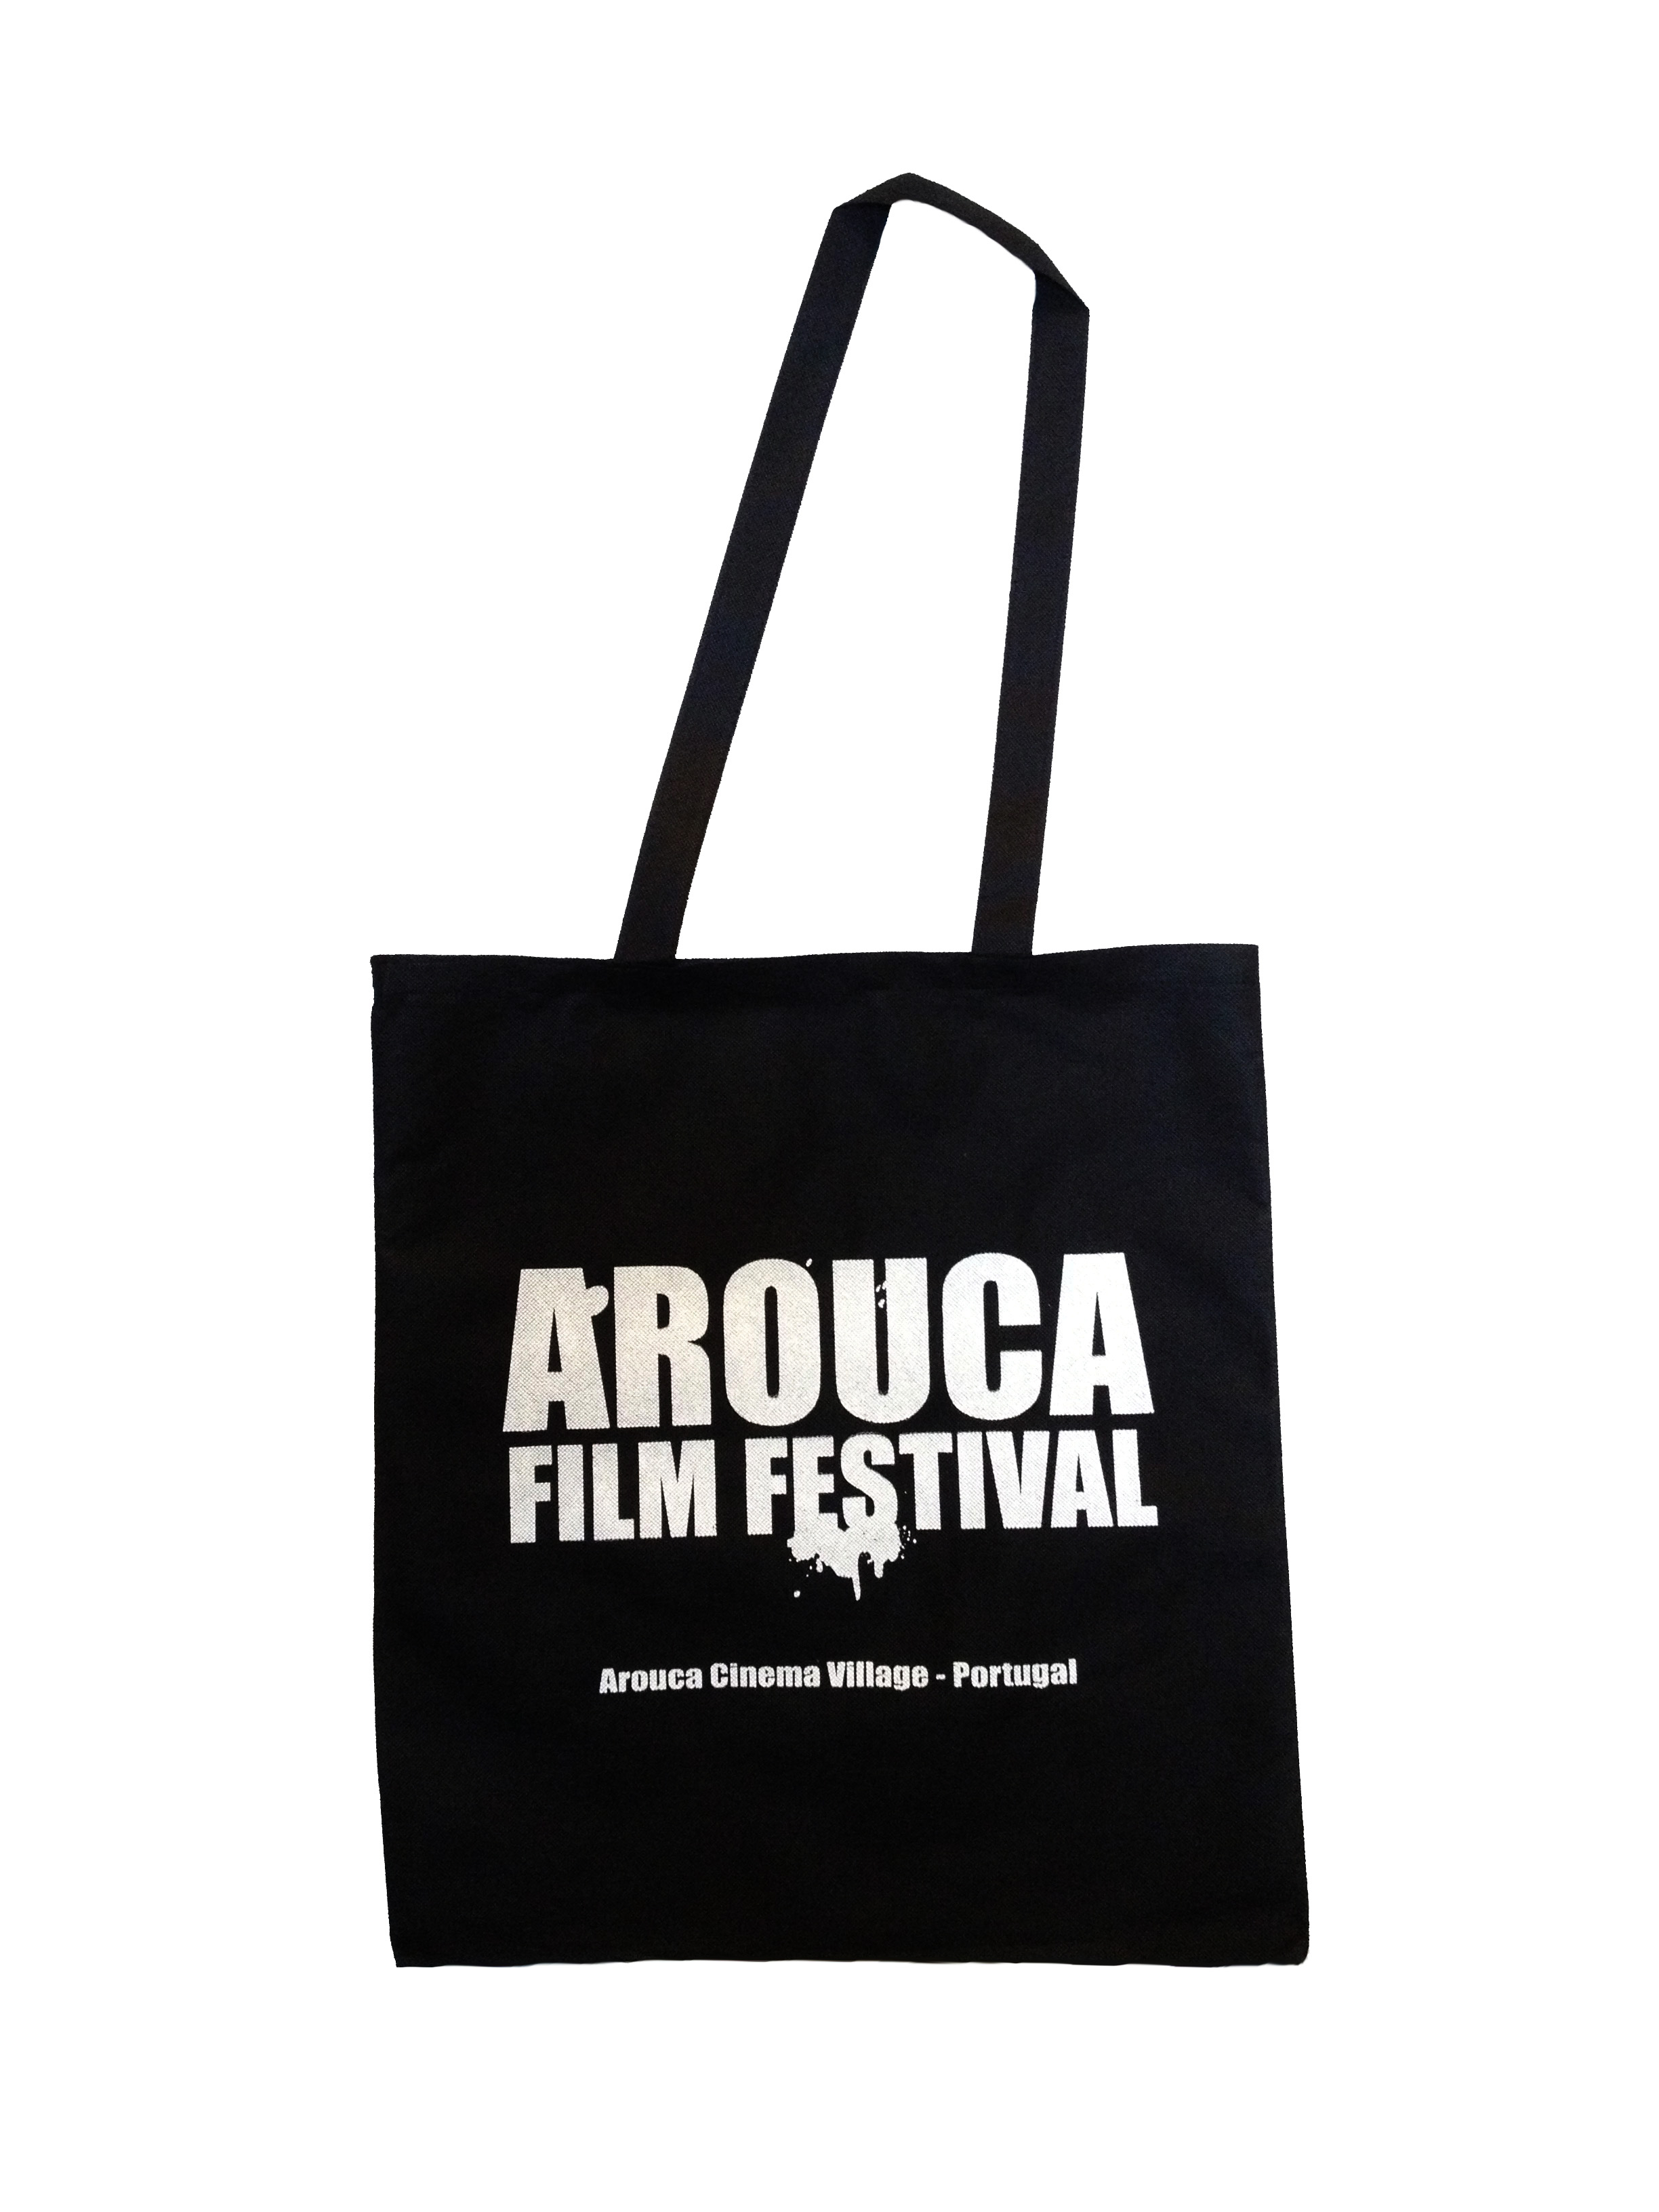 Saco oficial Arouca Film Festival / official bag: 5€